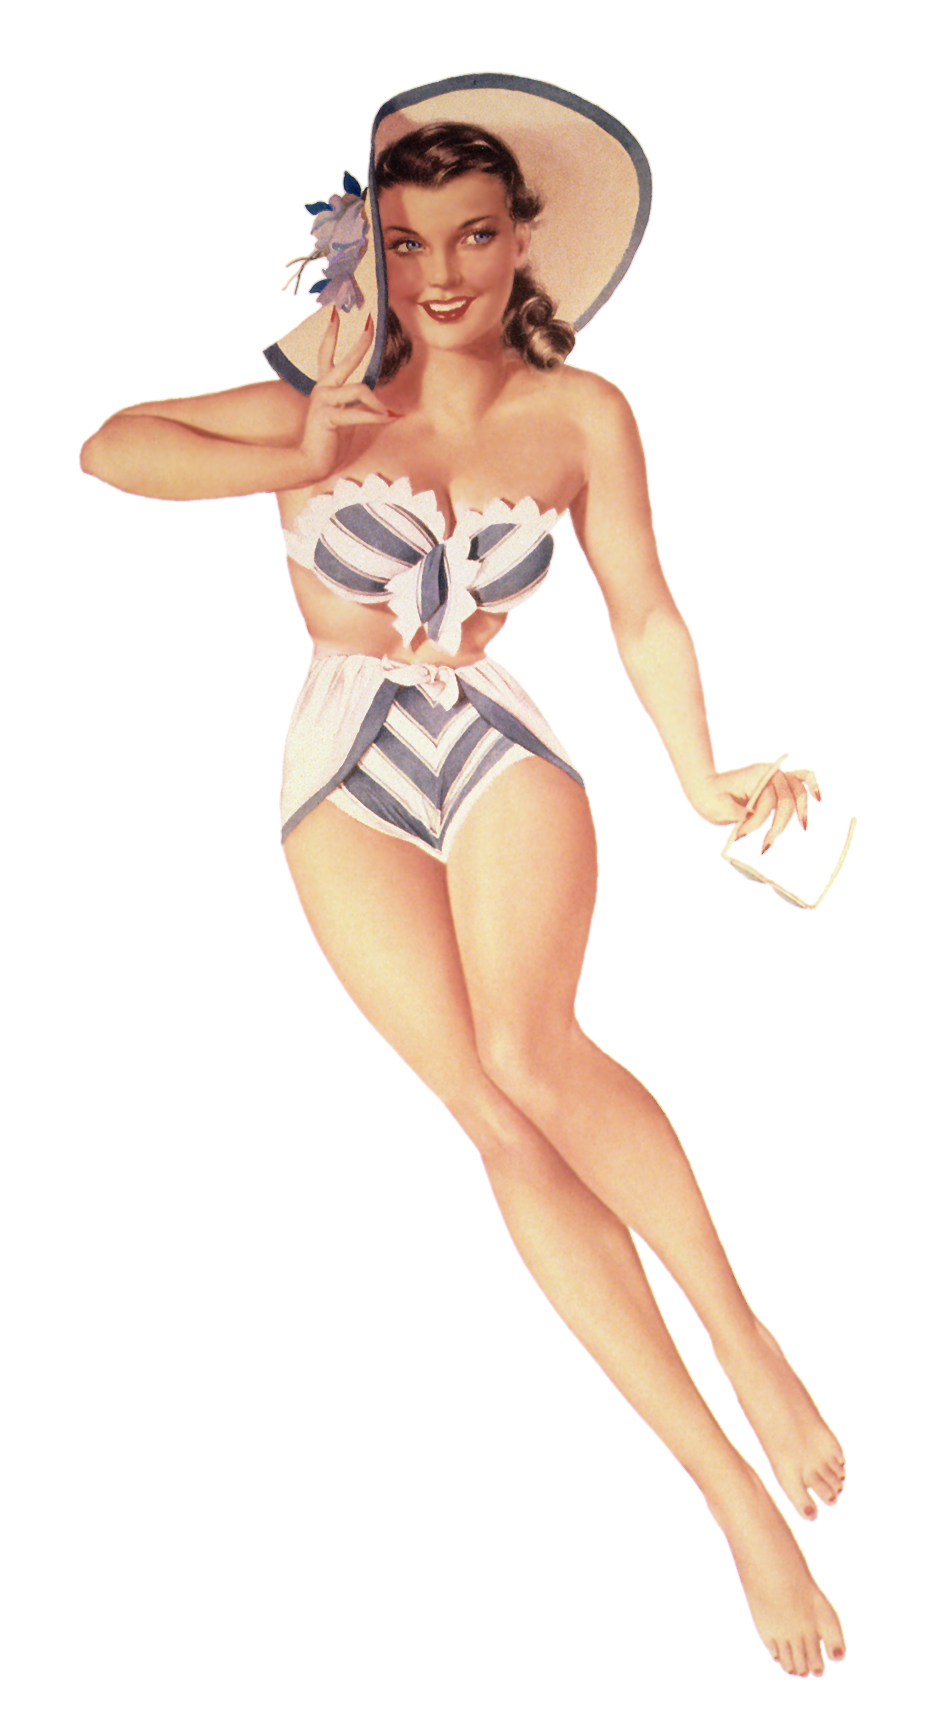 Free Classic Pinups Pin Up Girls By Alberto Vargas Page 1-6092